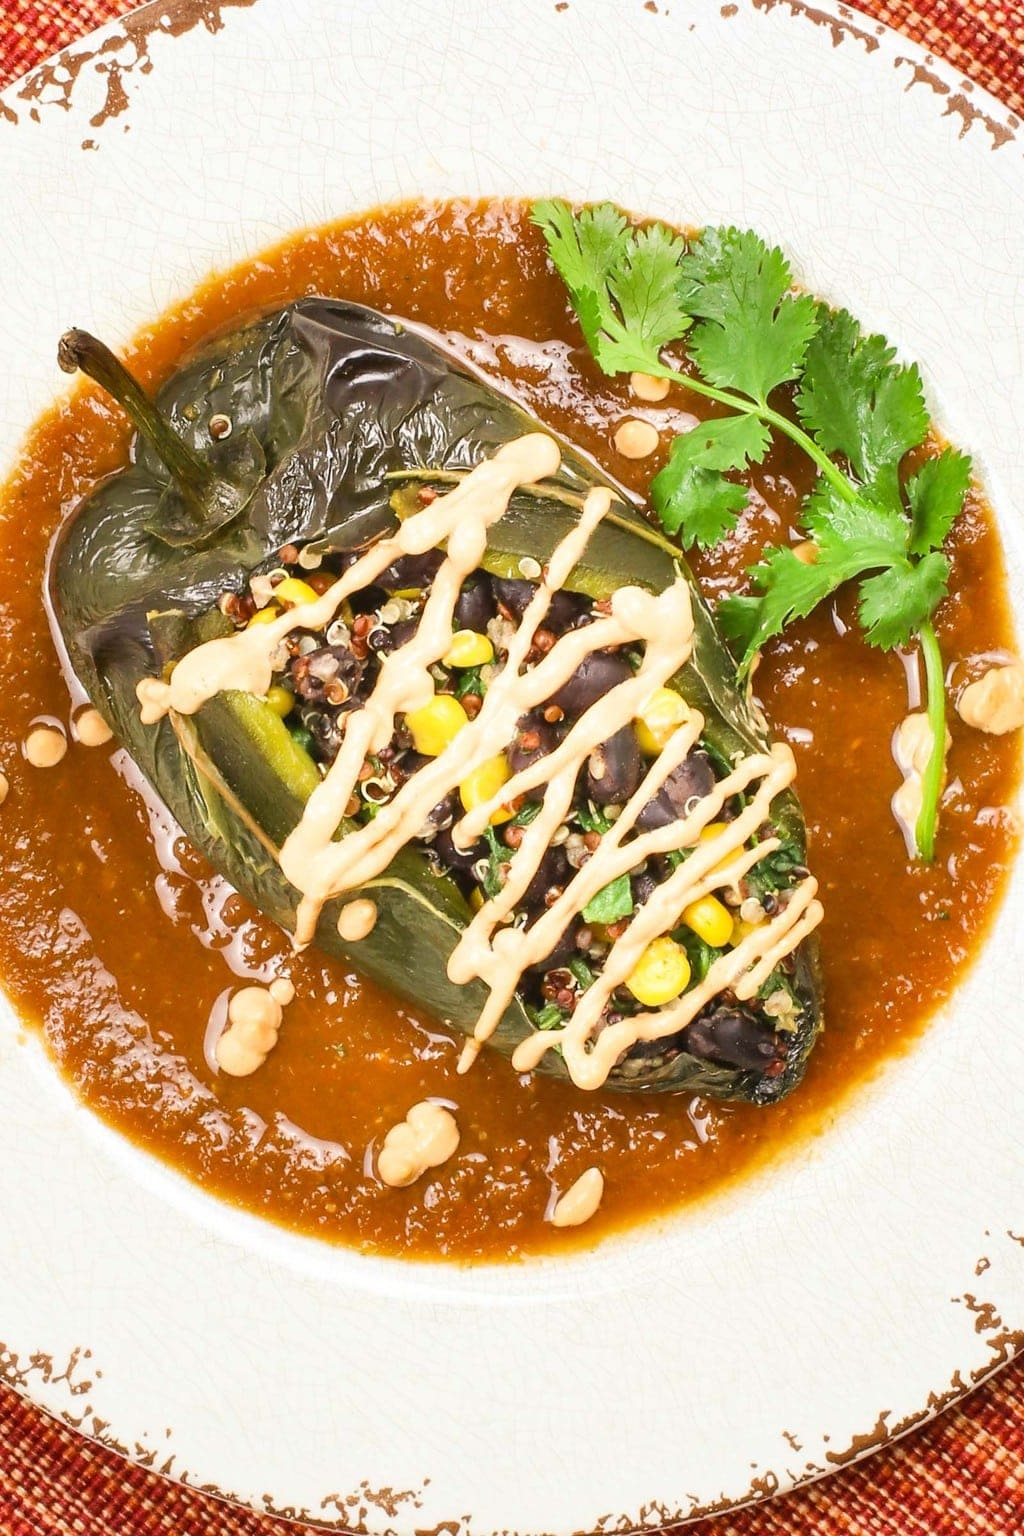 vegan chile relleno on with red sauce and vegan cheese sauce, on a red and orange placemat